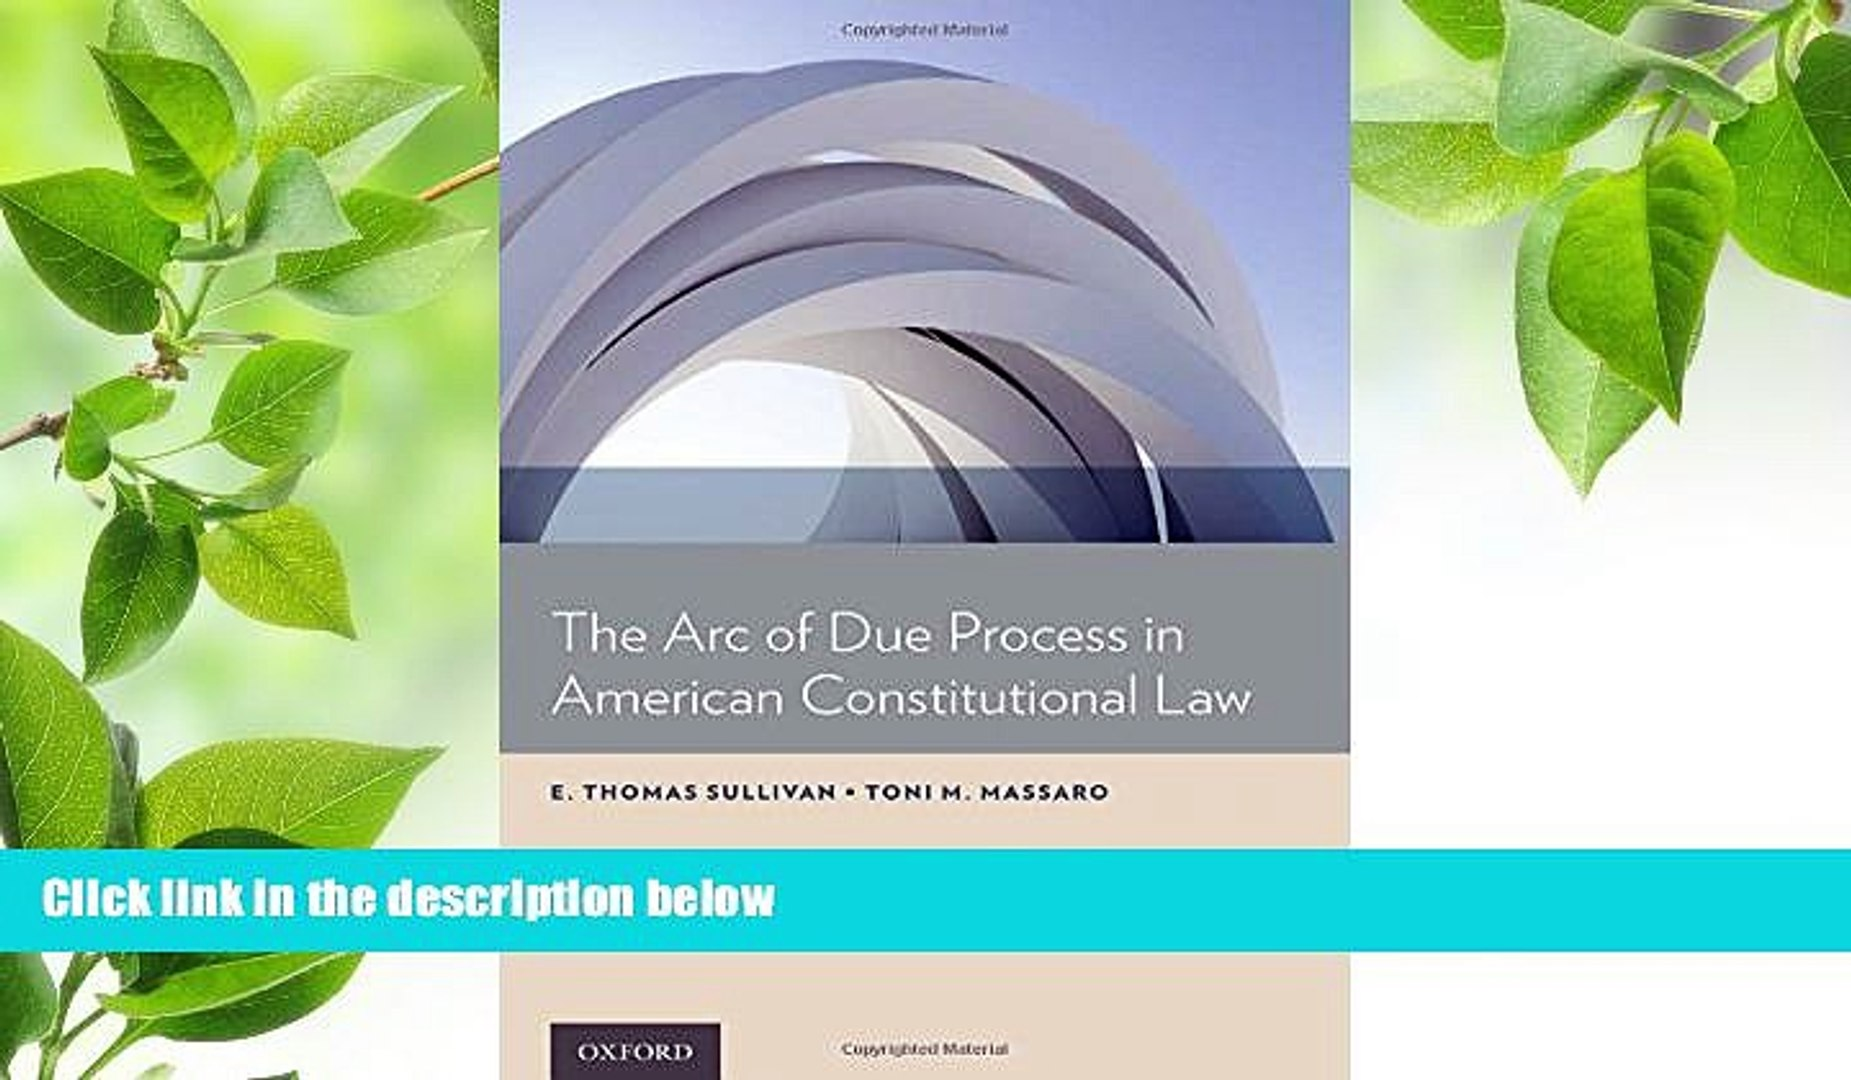 The Arc of Due Process in American Constitutional Law